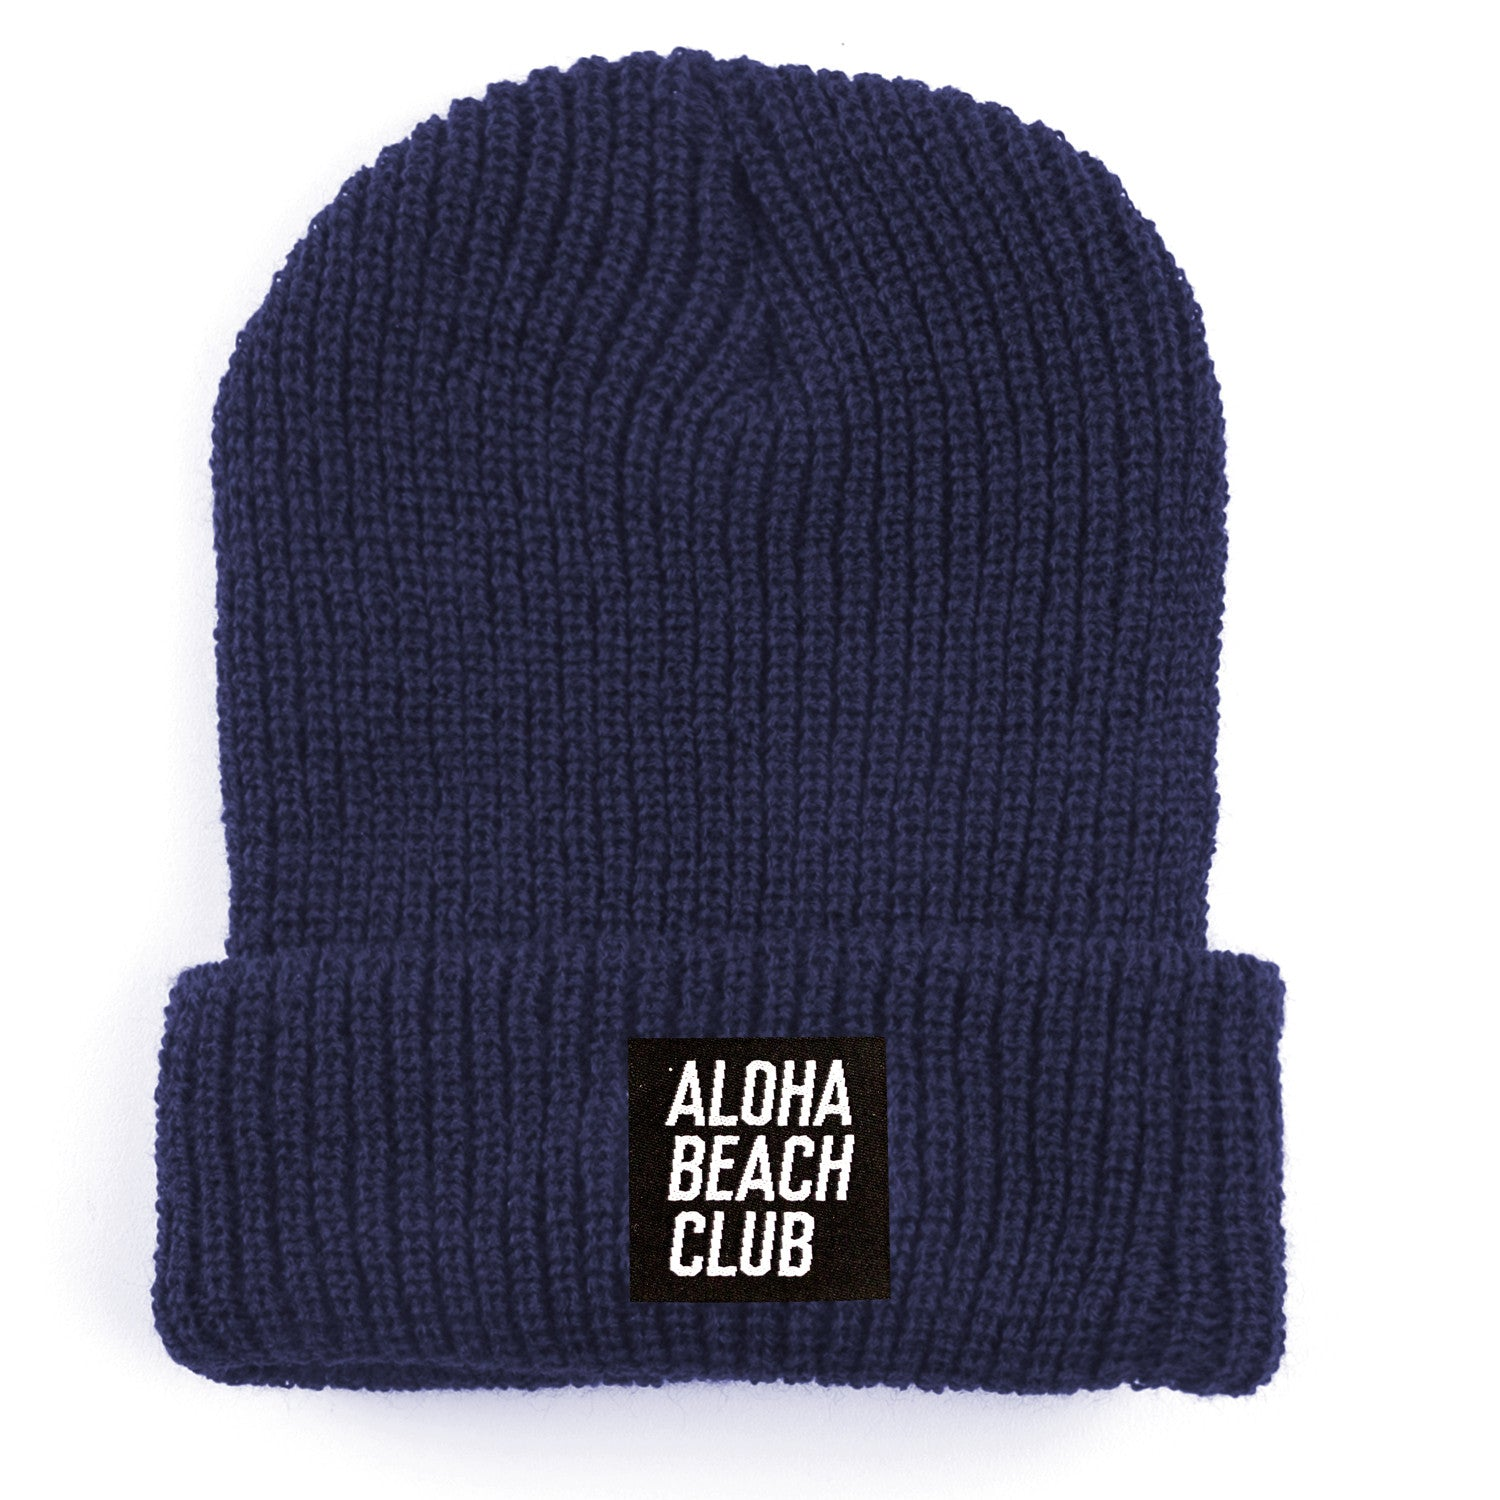 Aloha Beach Club - Kurtz Beanie Navy - Aloha Beach Club